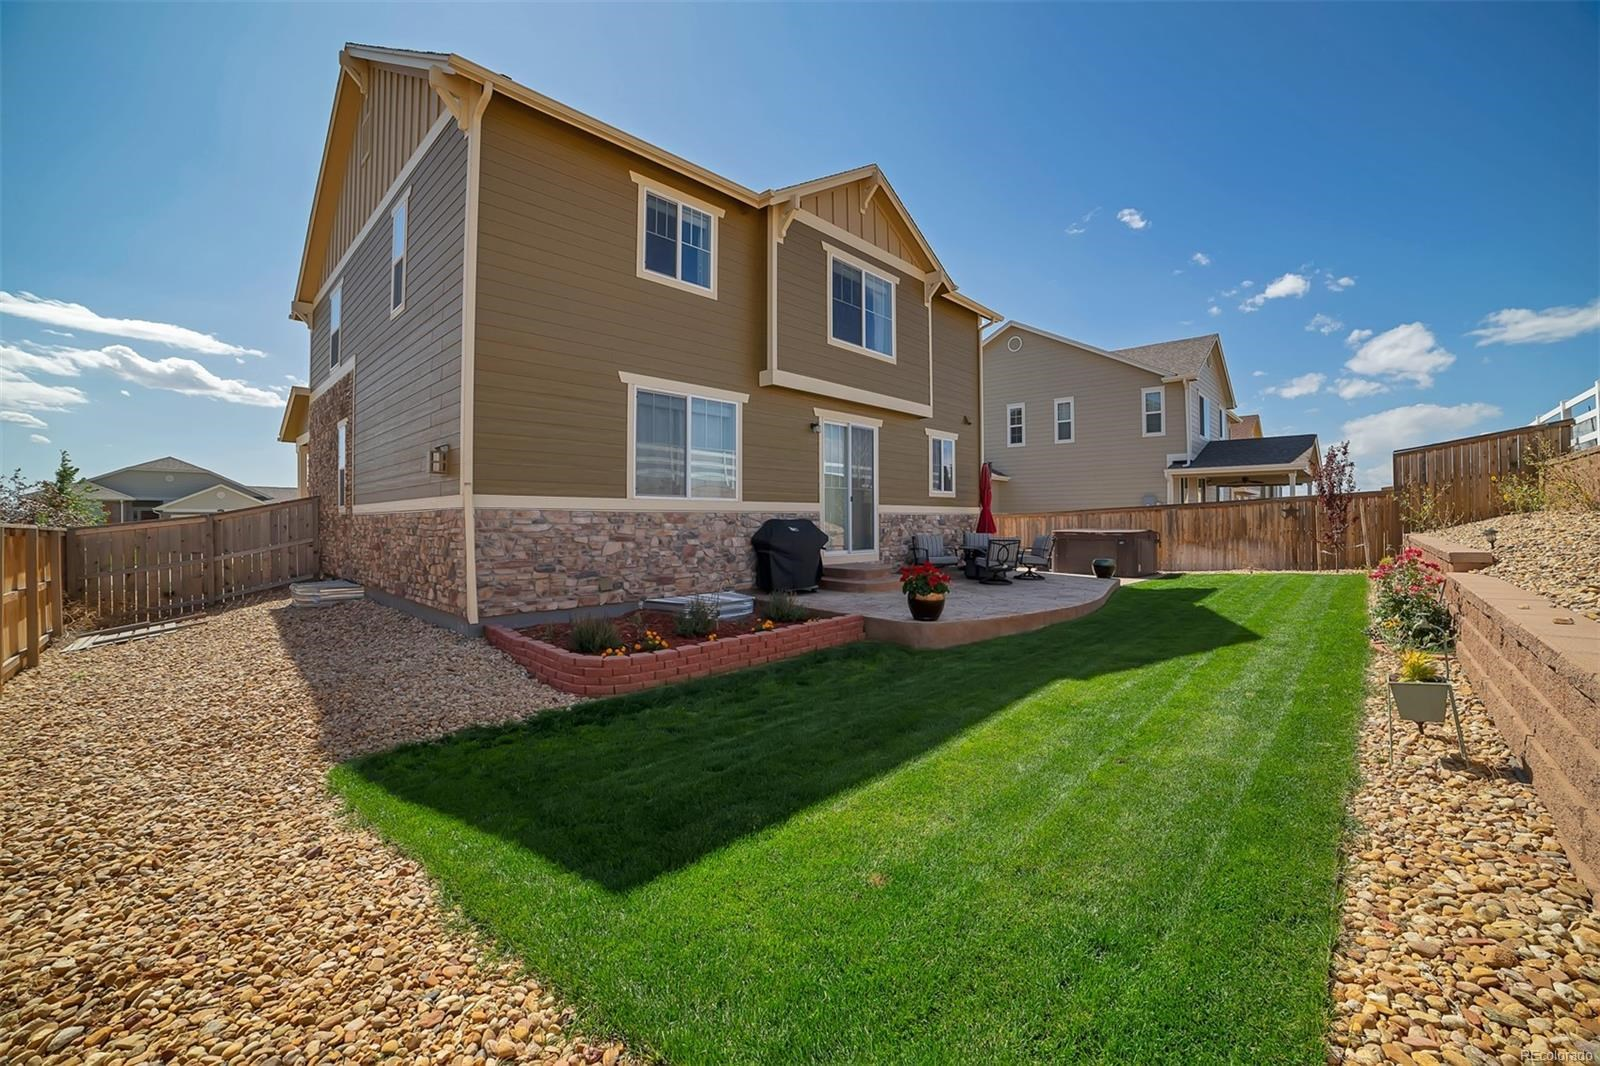 MLS# 2593781 - 24 - 3138 S Nepal Way, Aurora, CO 80013